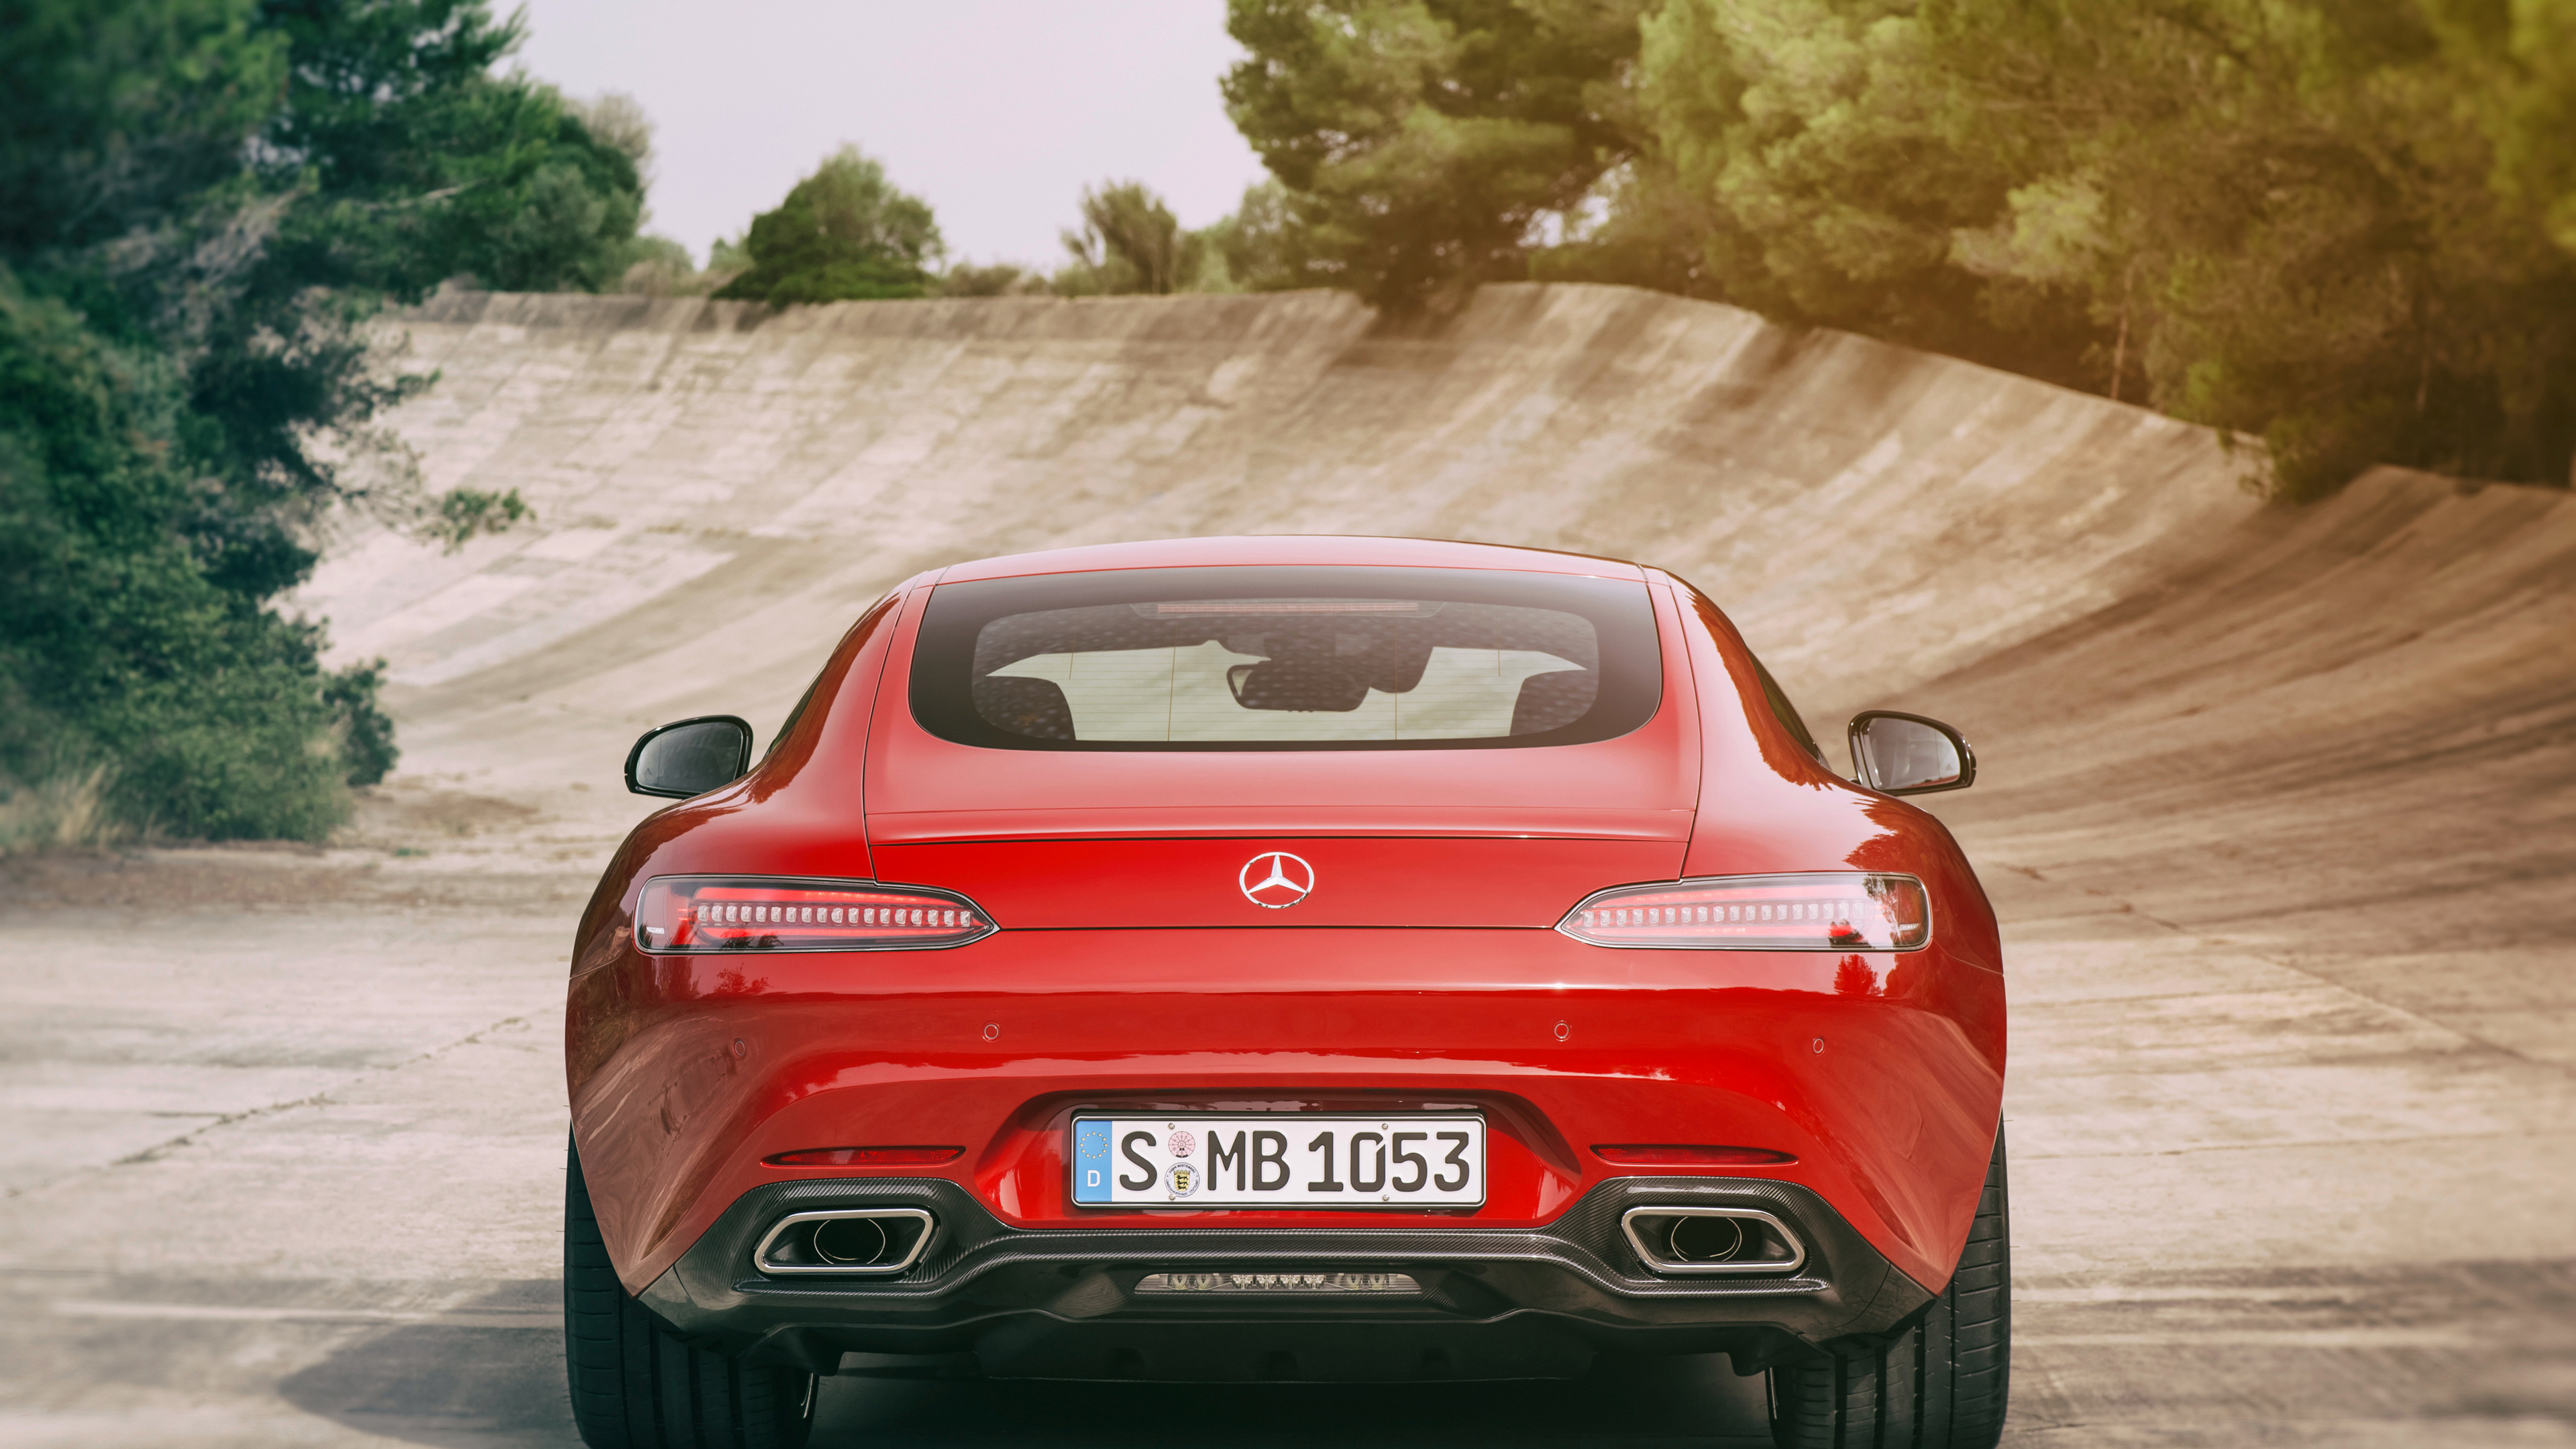 mercedes amg gt s 2017 rear 1539109013 - Mercedes AMG GT S 2017 Rear - mercedes wallpapers, mercedes amg wallpapers, hd-wallpapers, cars wallpapers, 4k-wallpapers, 2017 cars wallpapers